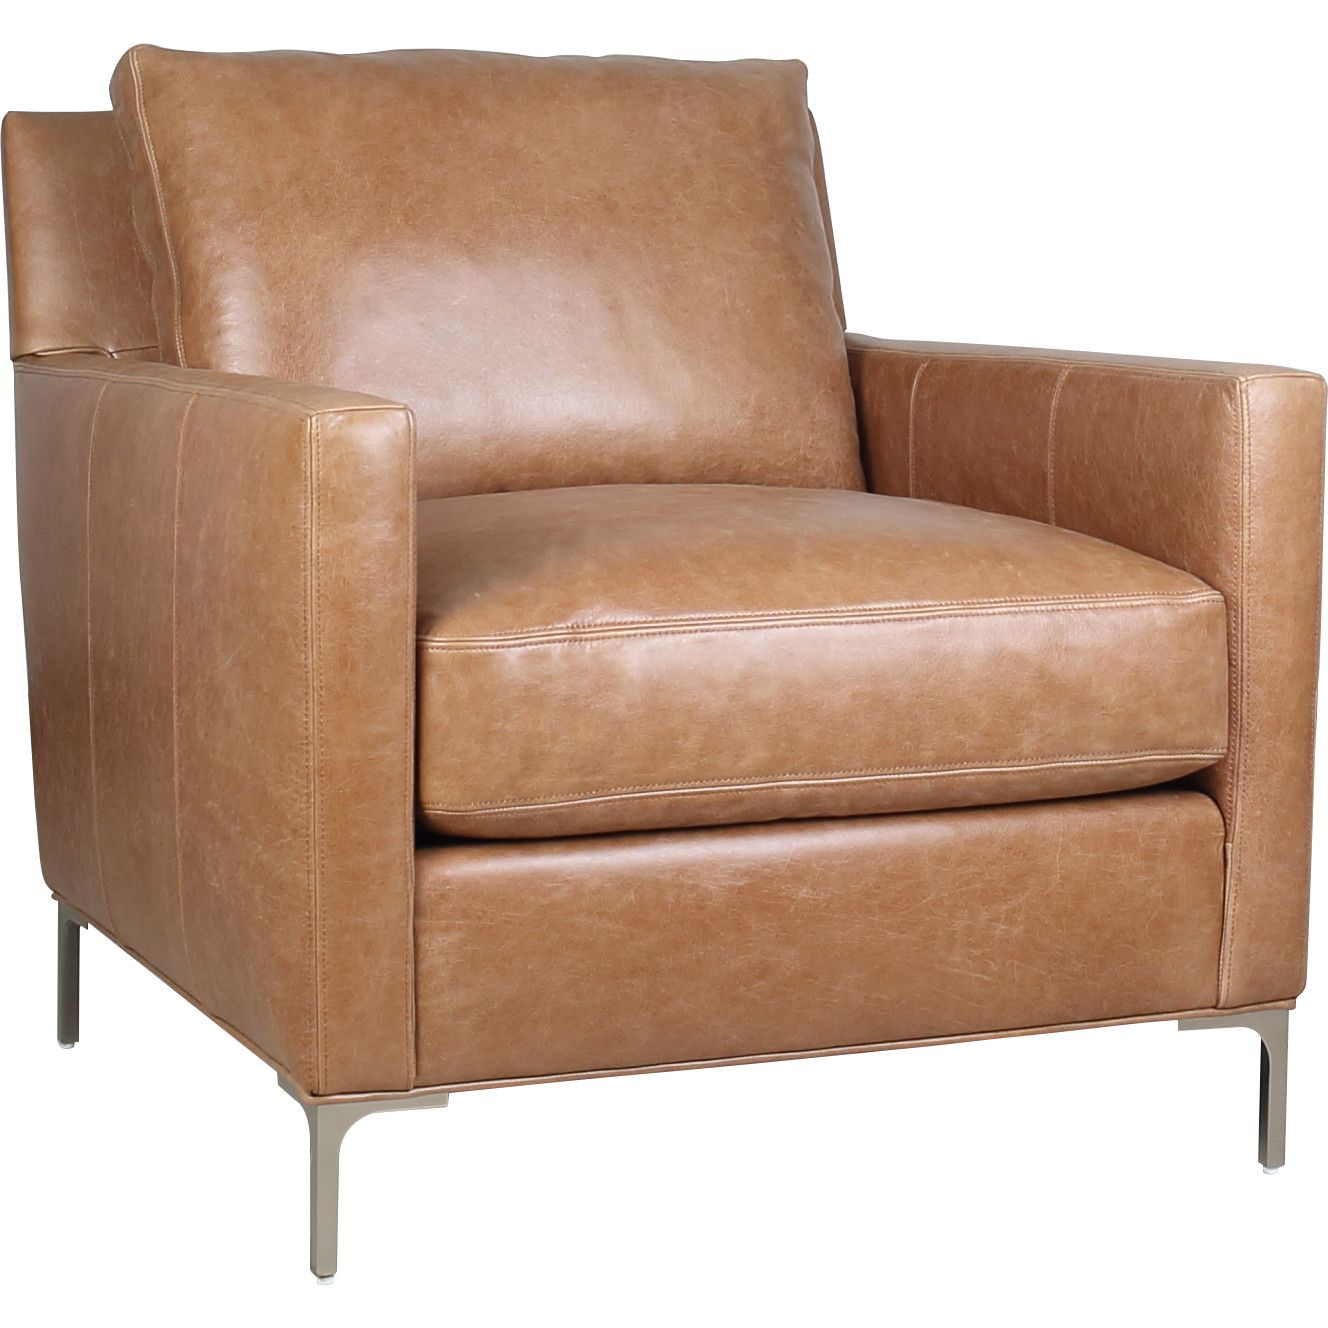 Best Spectra Turner Accent Chair Cognac Brown Top Grain Leather 400 x 300